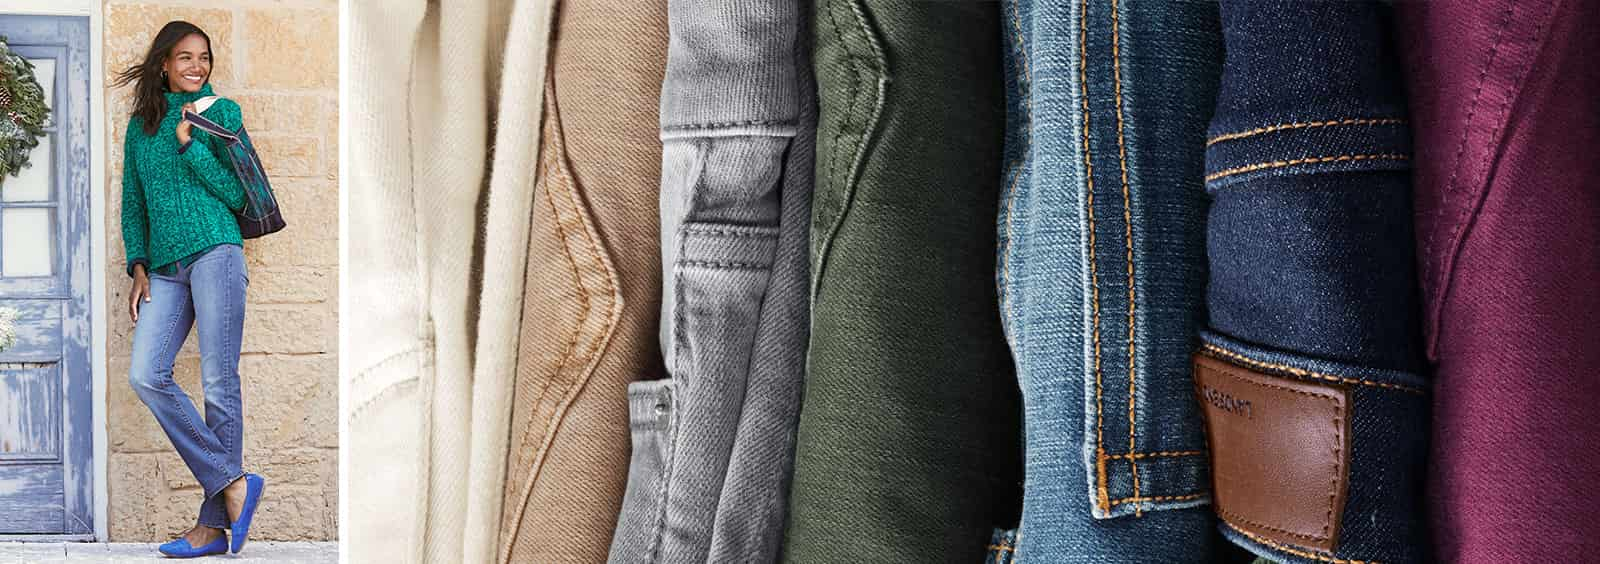 Why a T-Shirt and Jeans Make the Best Outfit | Lands' End